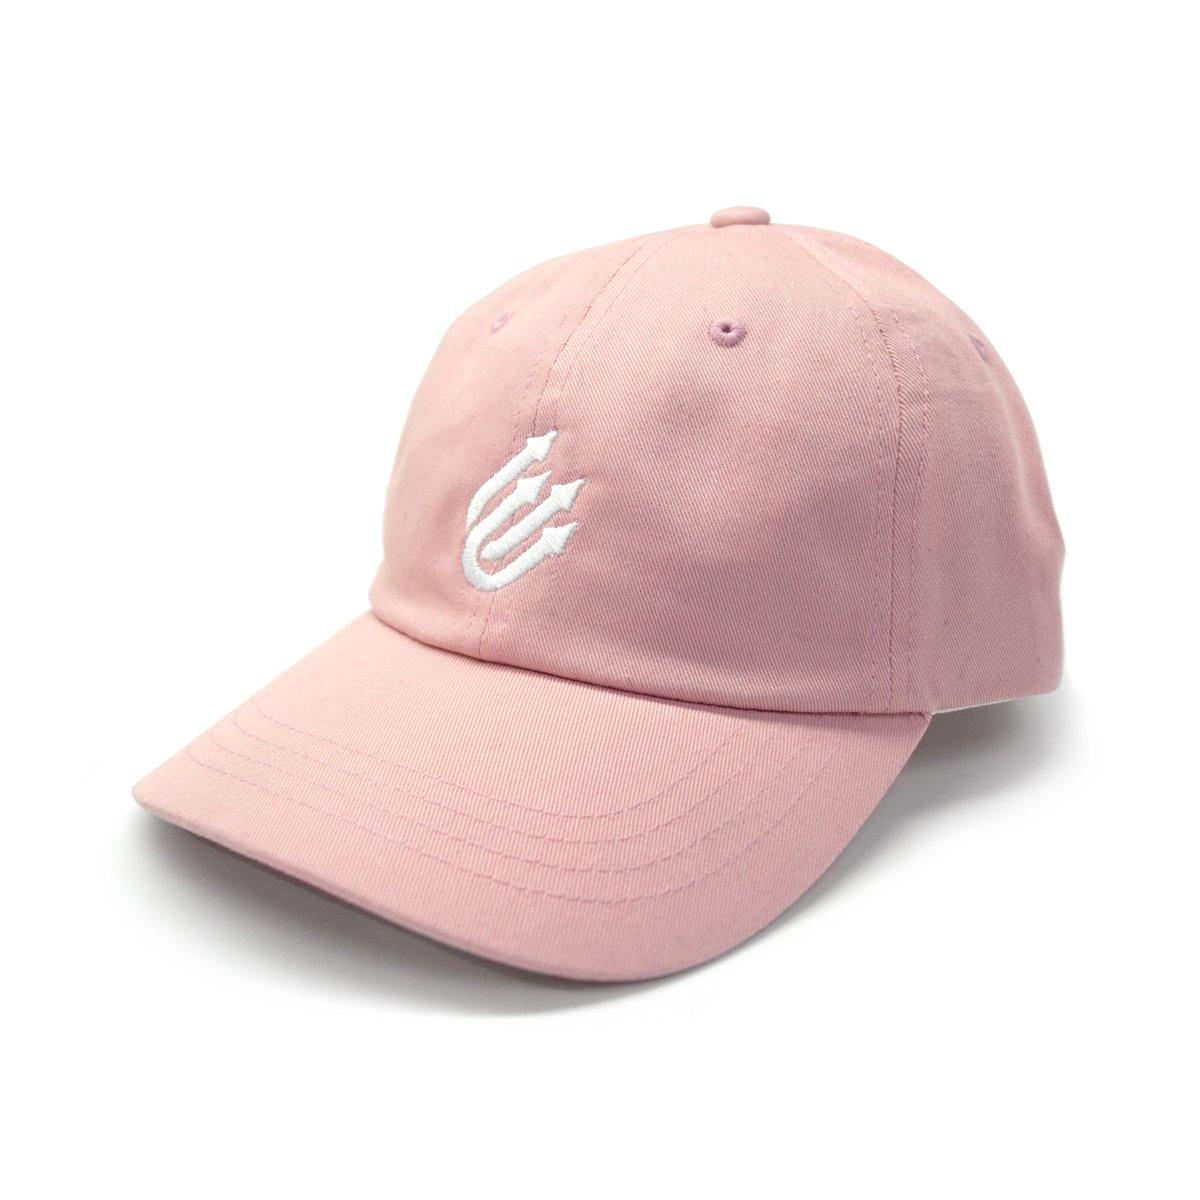 CCL Logo Dad Hat